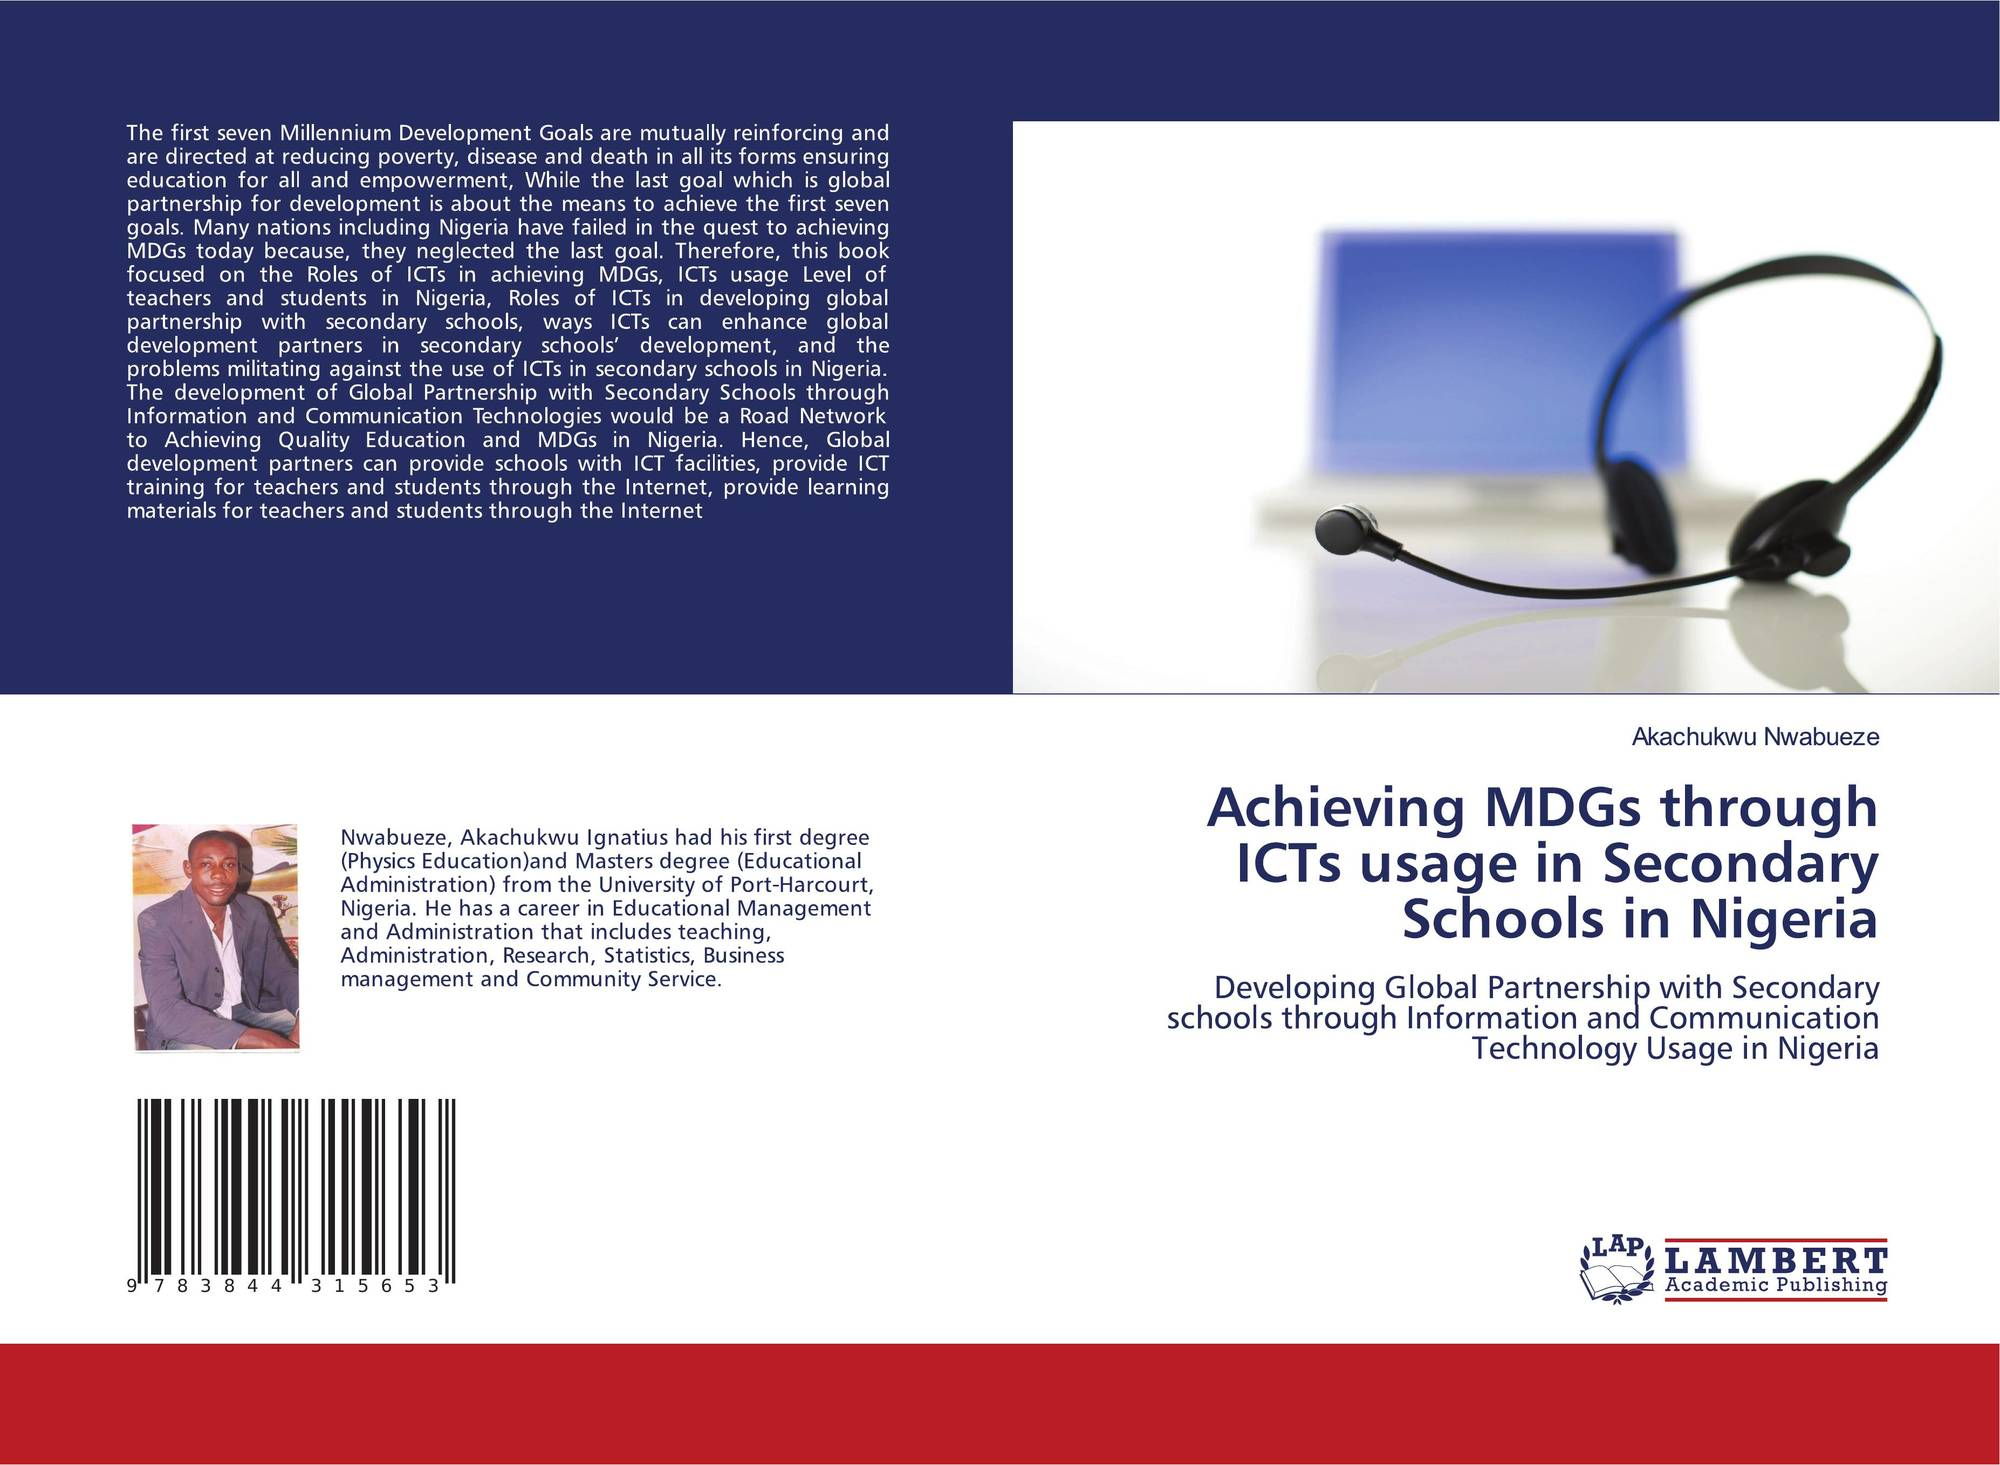 governance with ict towards mdg a This paper explores how recent revolutionary changes in information and communication technologies (ict) affect environmental sustainability, with an eye to the millennium development goal (mdg) set up to ensure environmental sustainability in this century the paper is part of a series of 7.